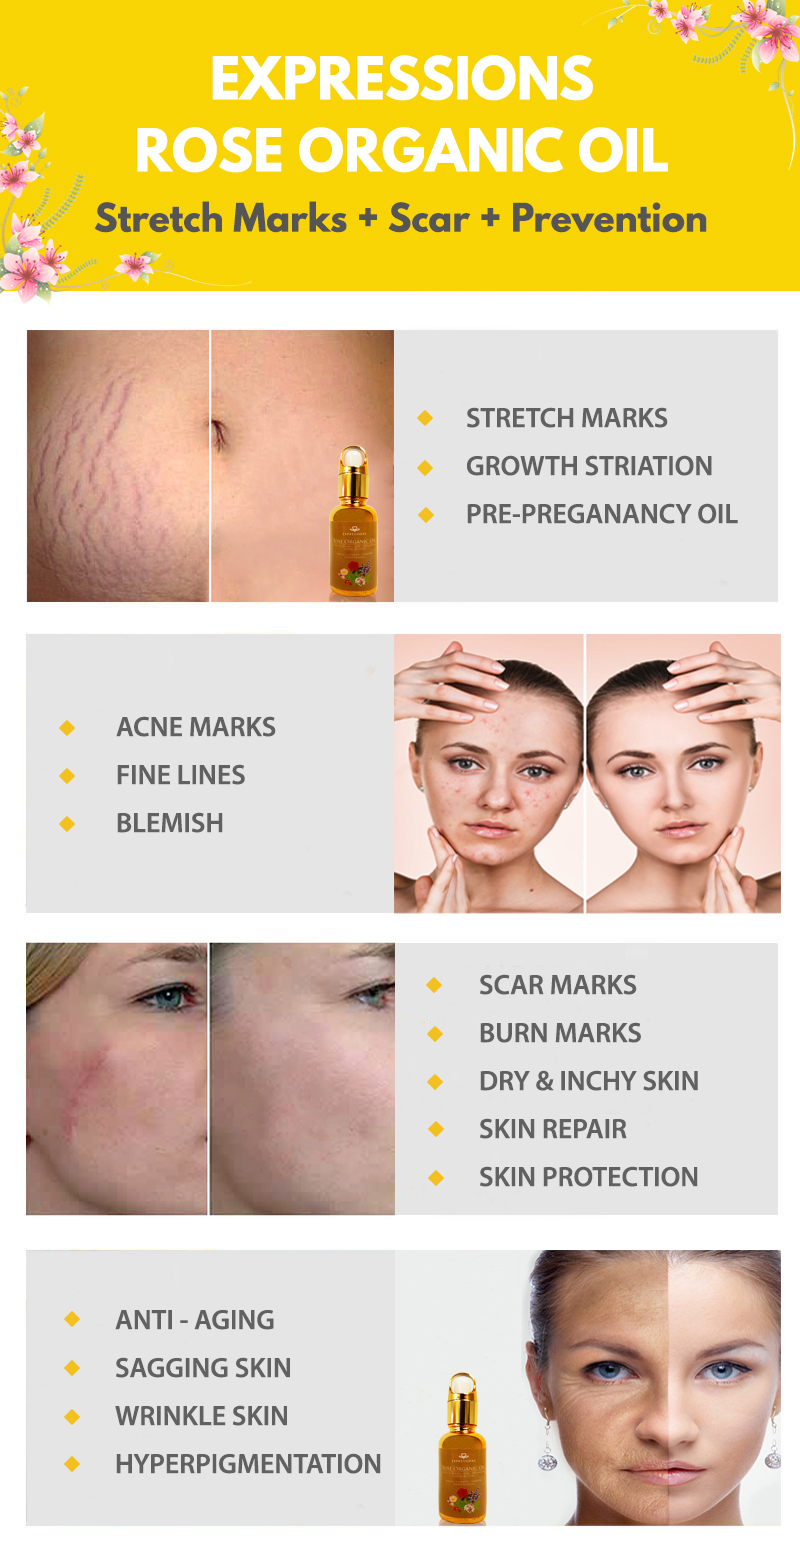 new mum, Stretch Marks Removal, Scar Marks Removal, Acne Clearance, new mum stretch marks removal